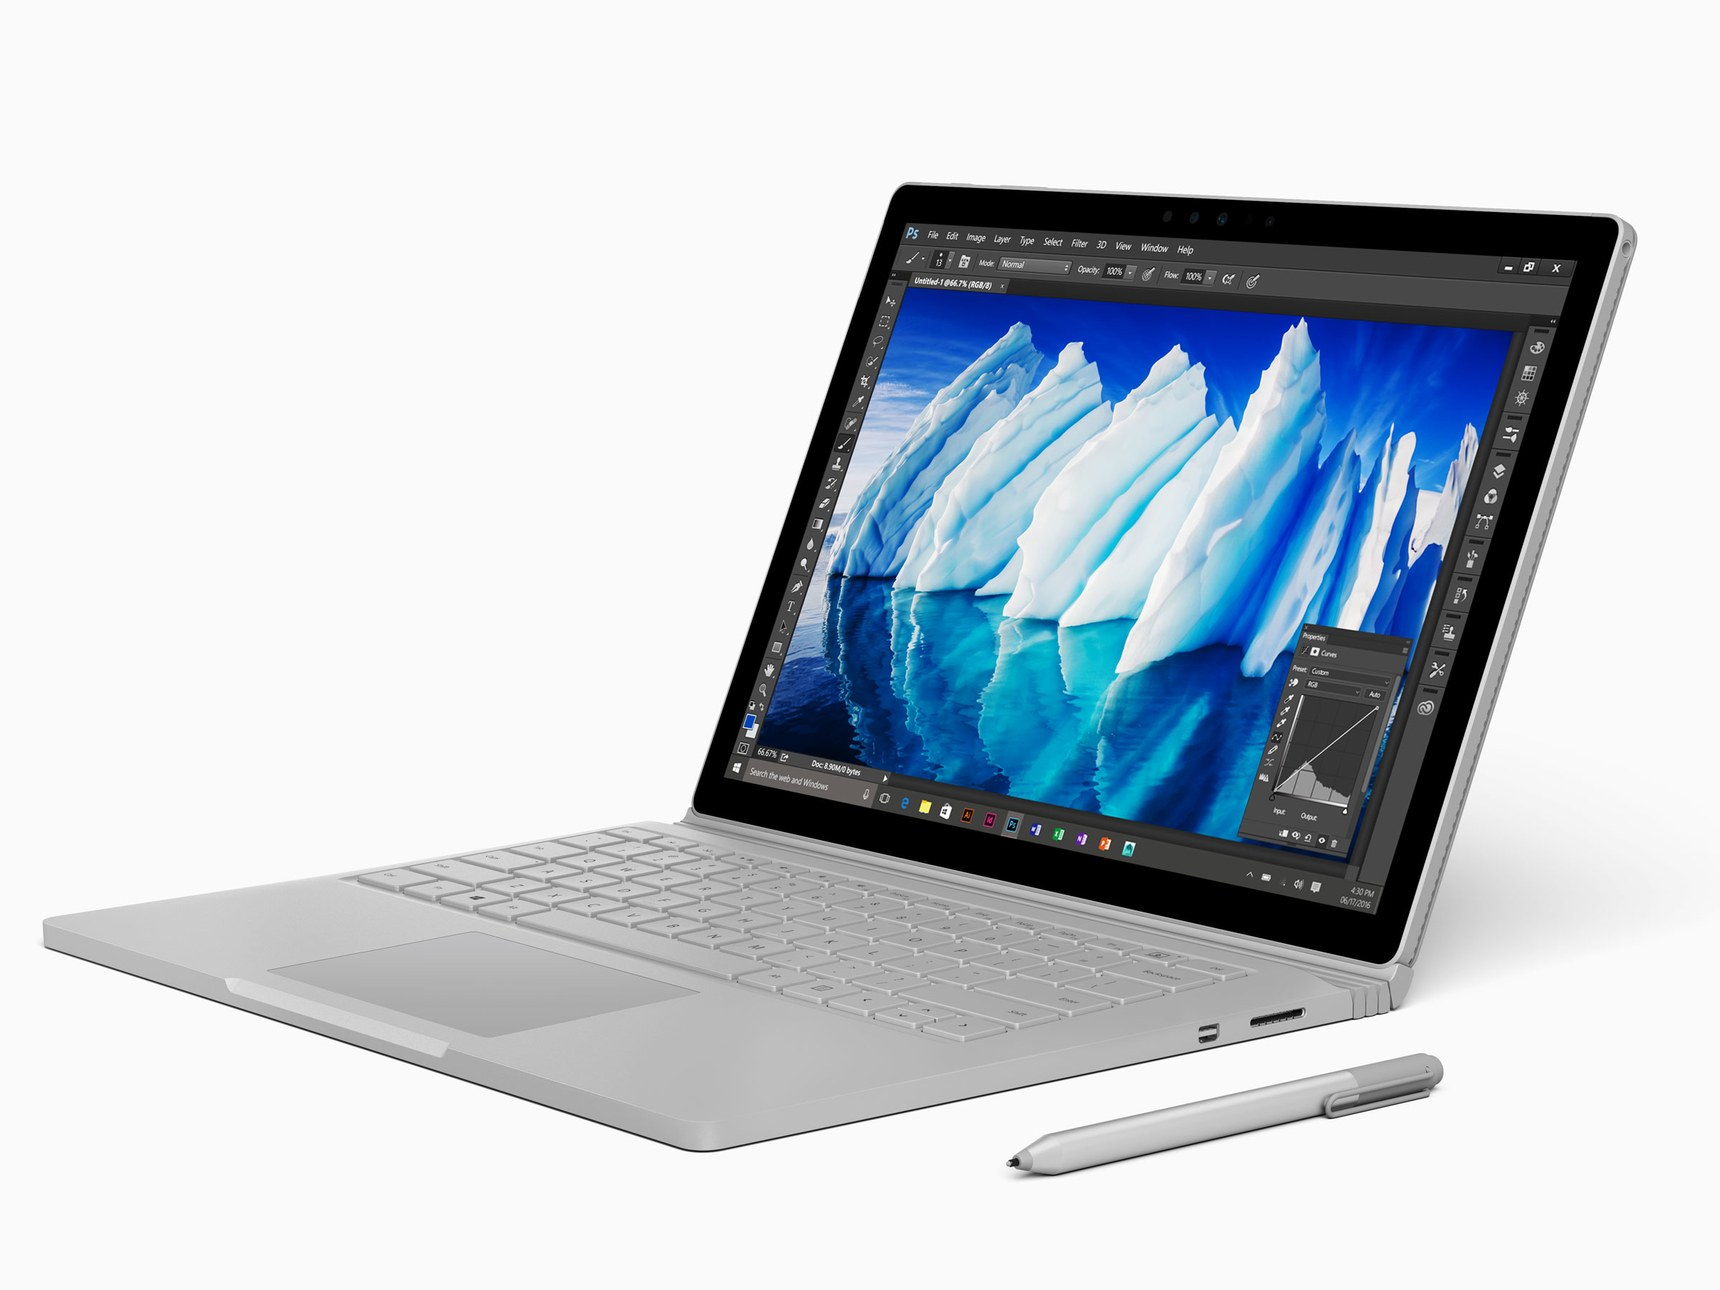 Surface Book With Performance Base i7 - RAM 8GB - SSD 256GB